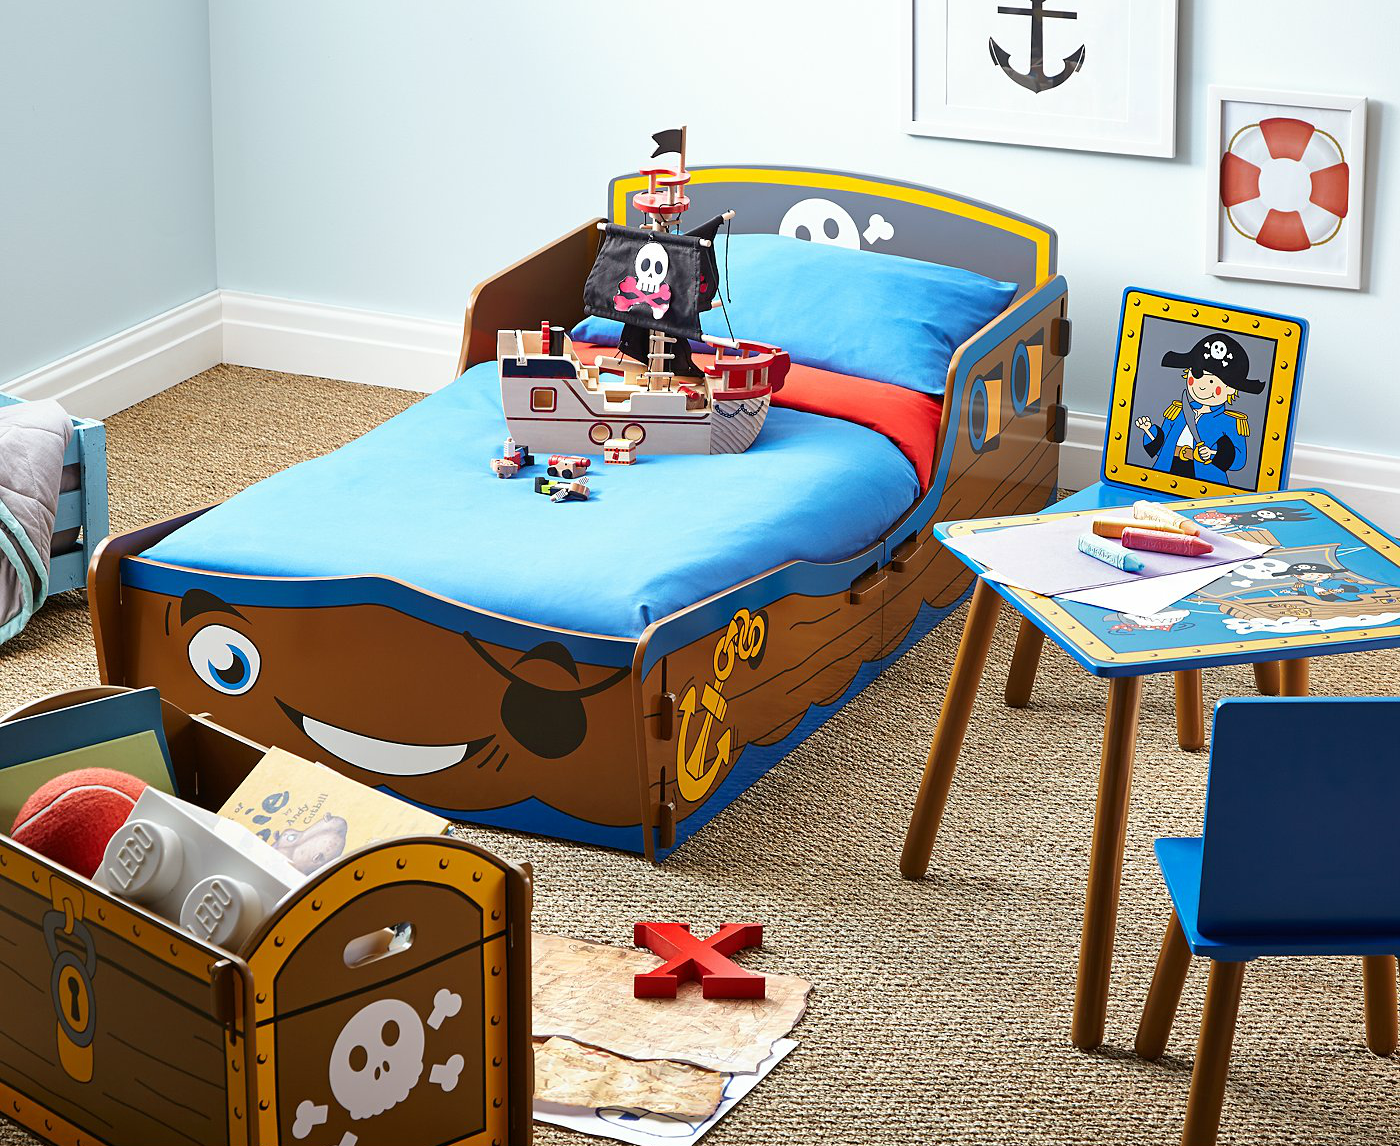 Pirate Themed Bedroom Ideas for Toddlers - With love from Lou